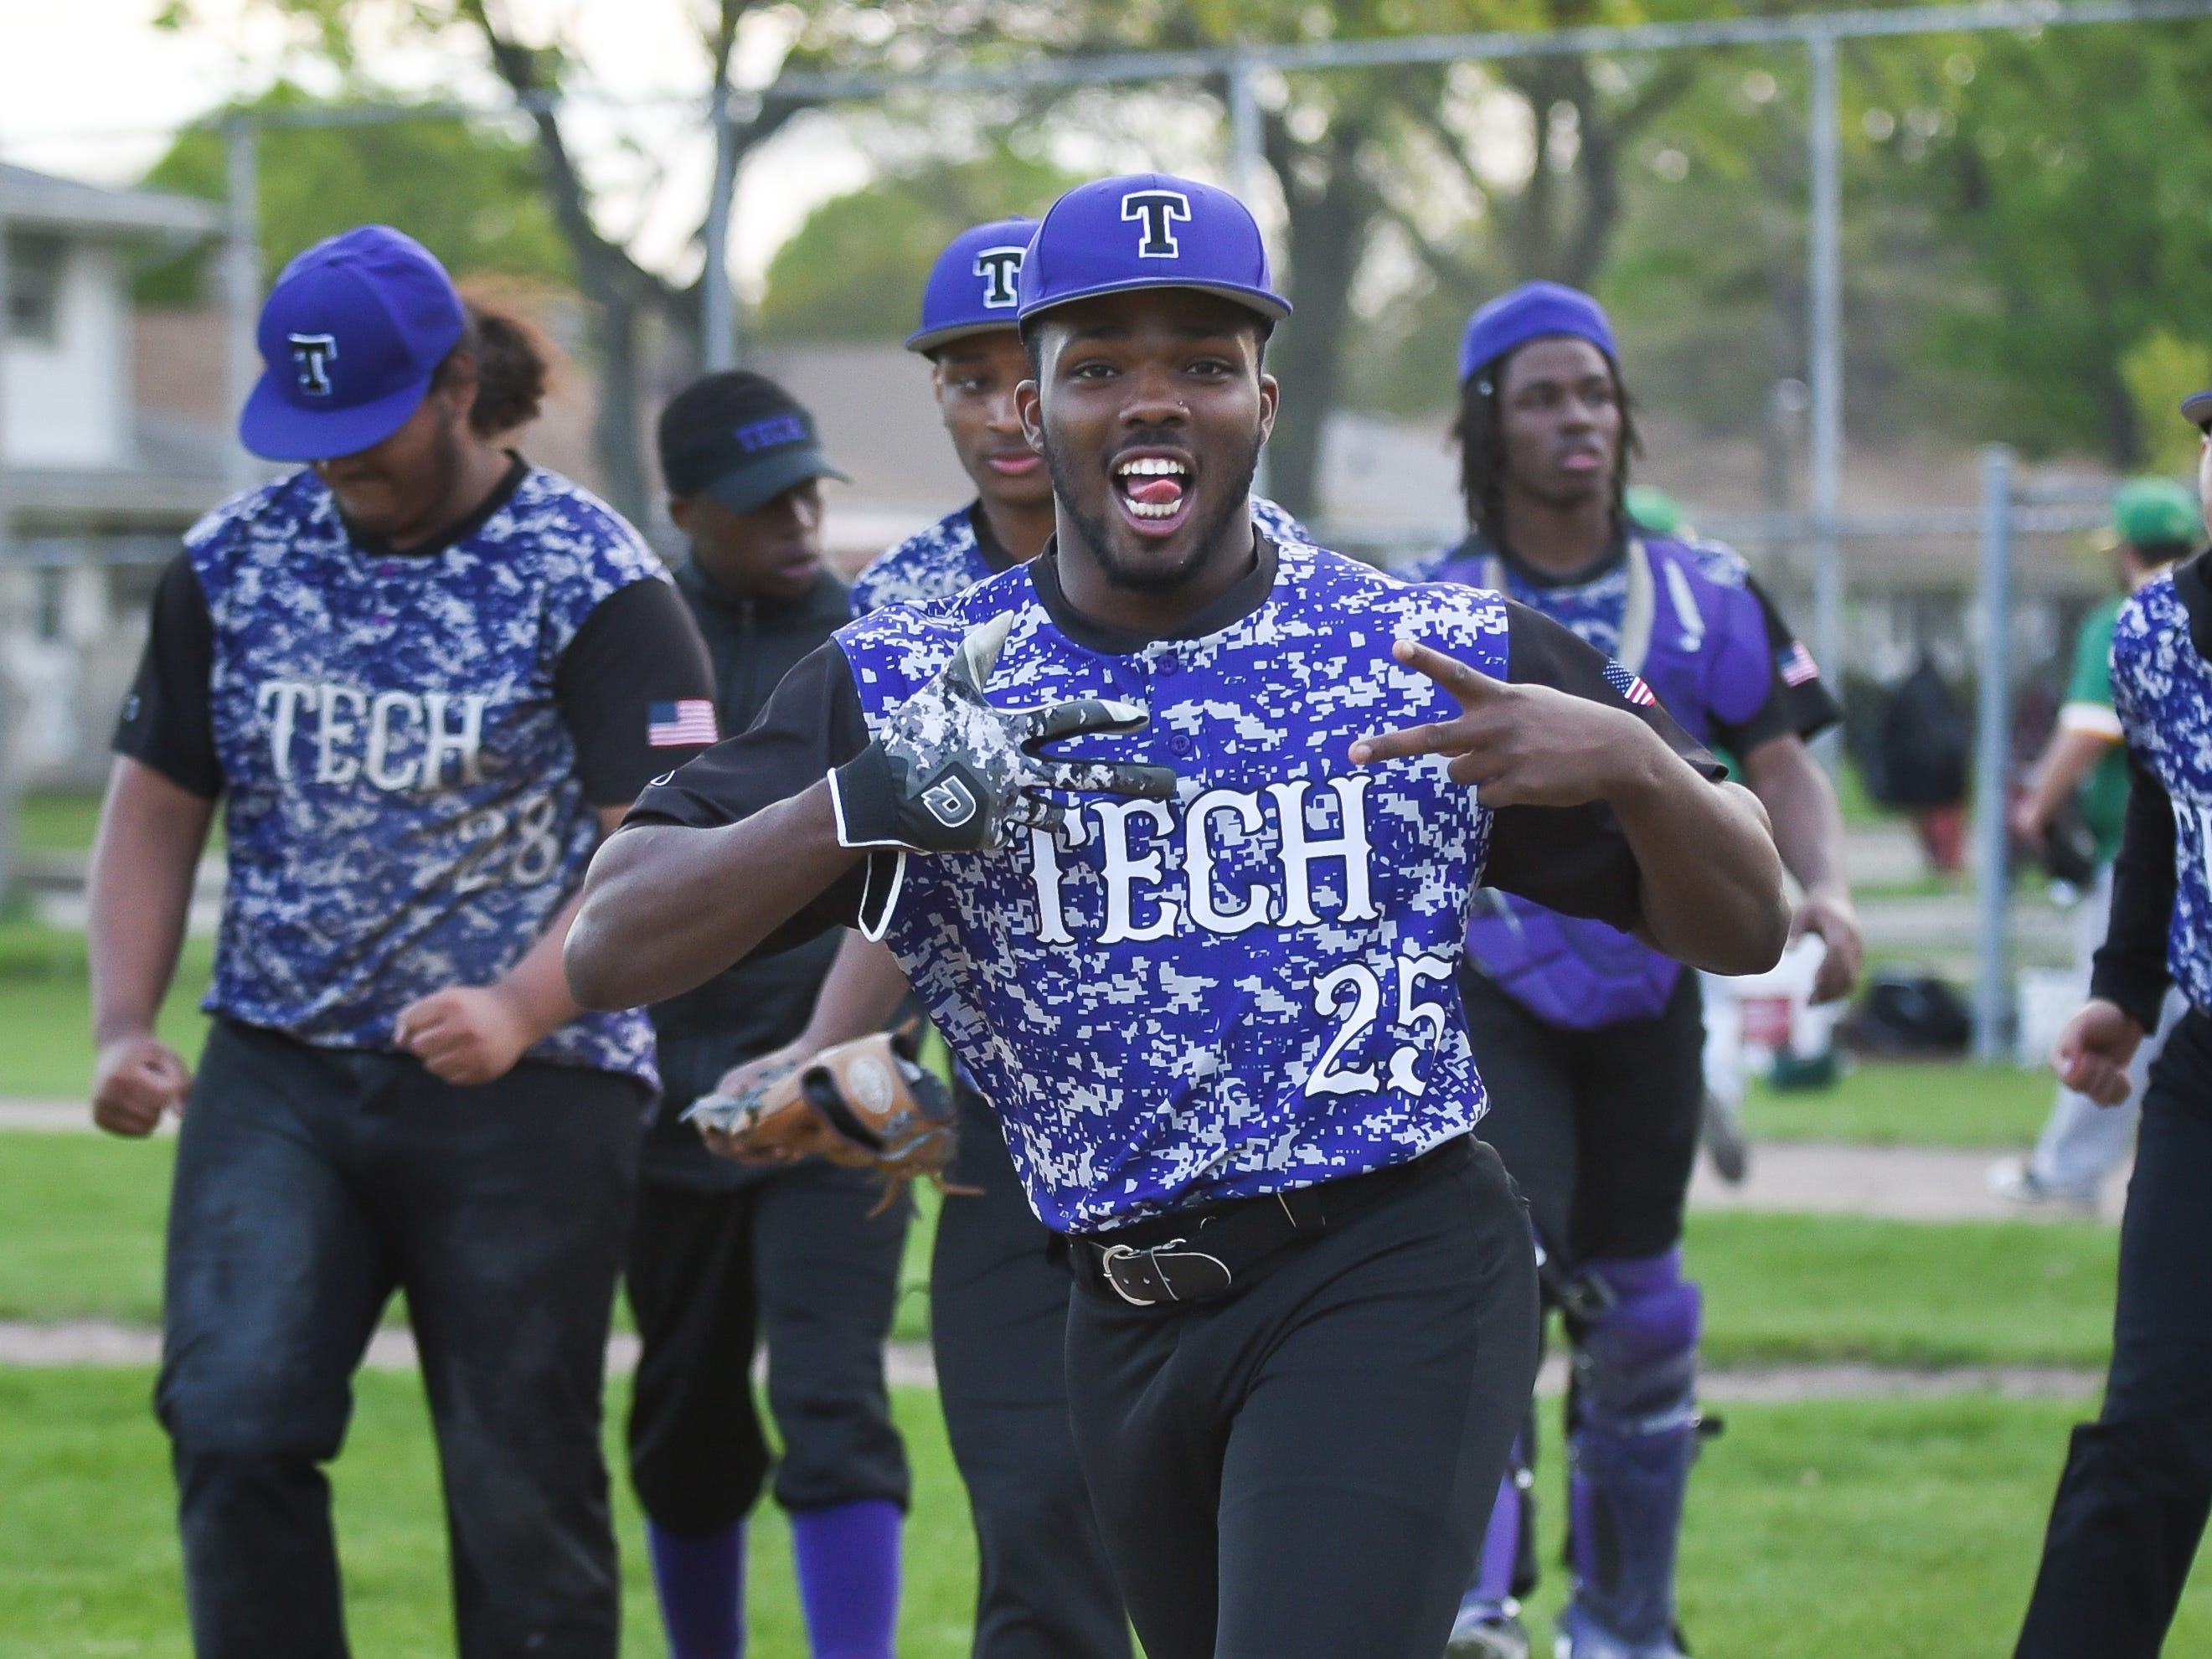 Milwaukee Bradley Tech outfielder Rayshawn Simpson hams it up after Tech beat Milwaukee Hamilton, 3-1, in a City Conference baseball game Tuesday, May 14, 2019, at Hogan Field at Hamilton High School.